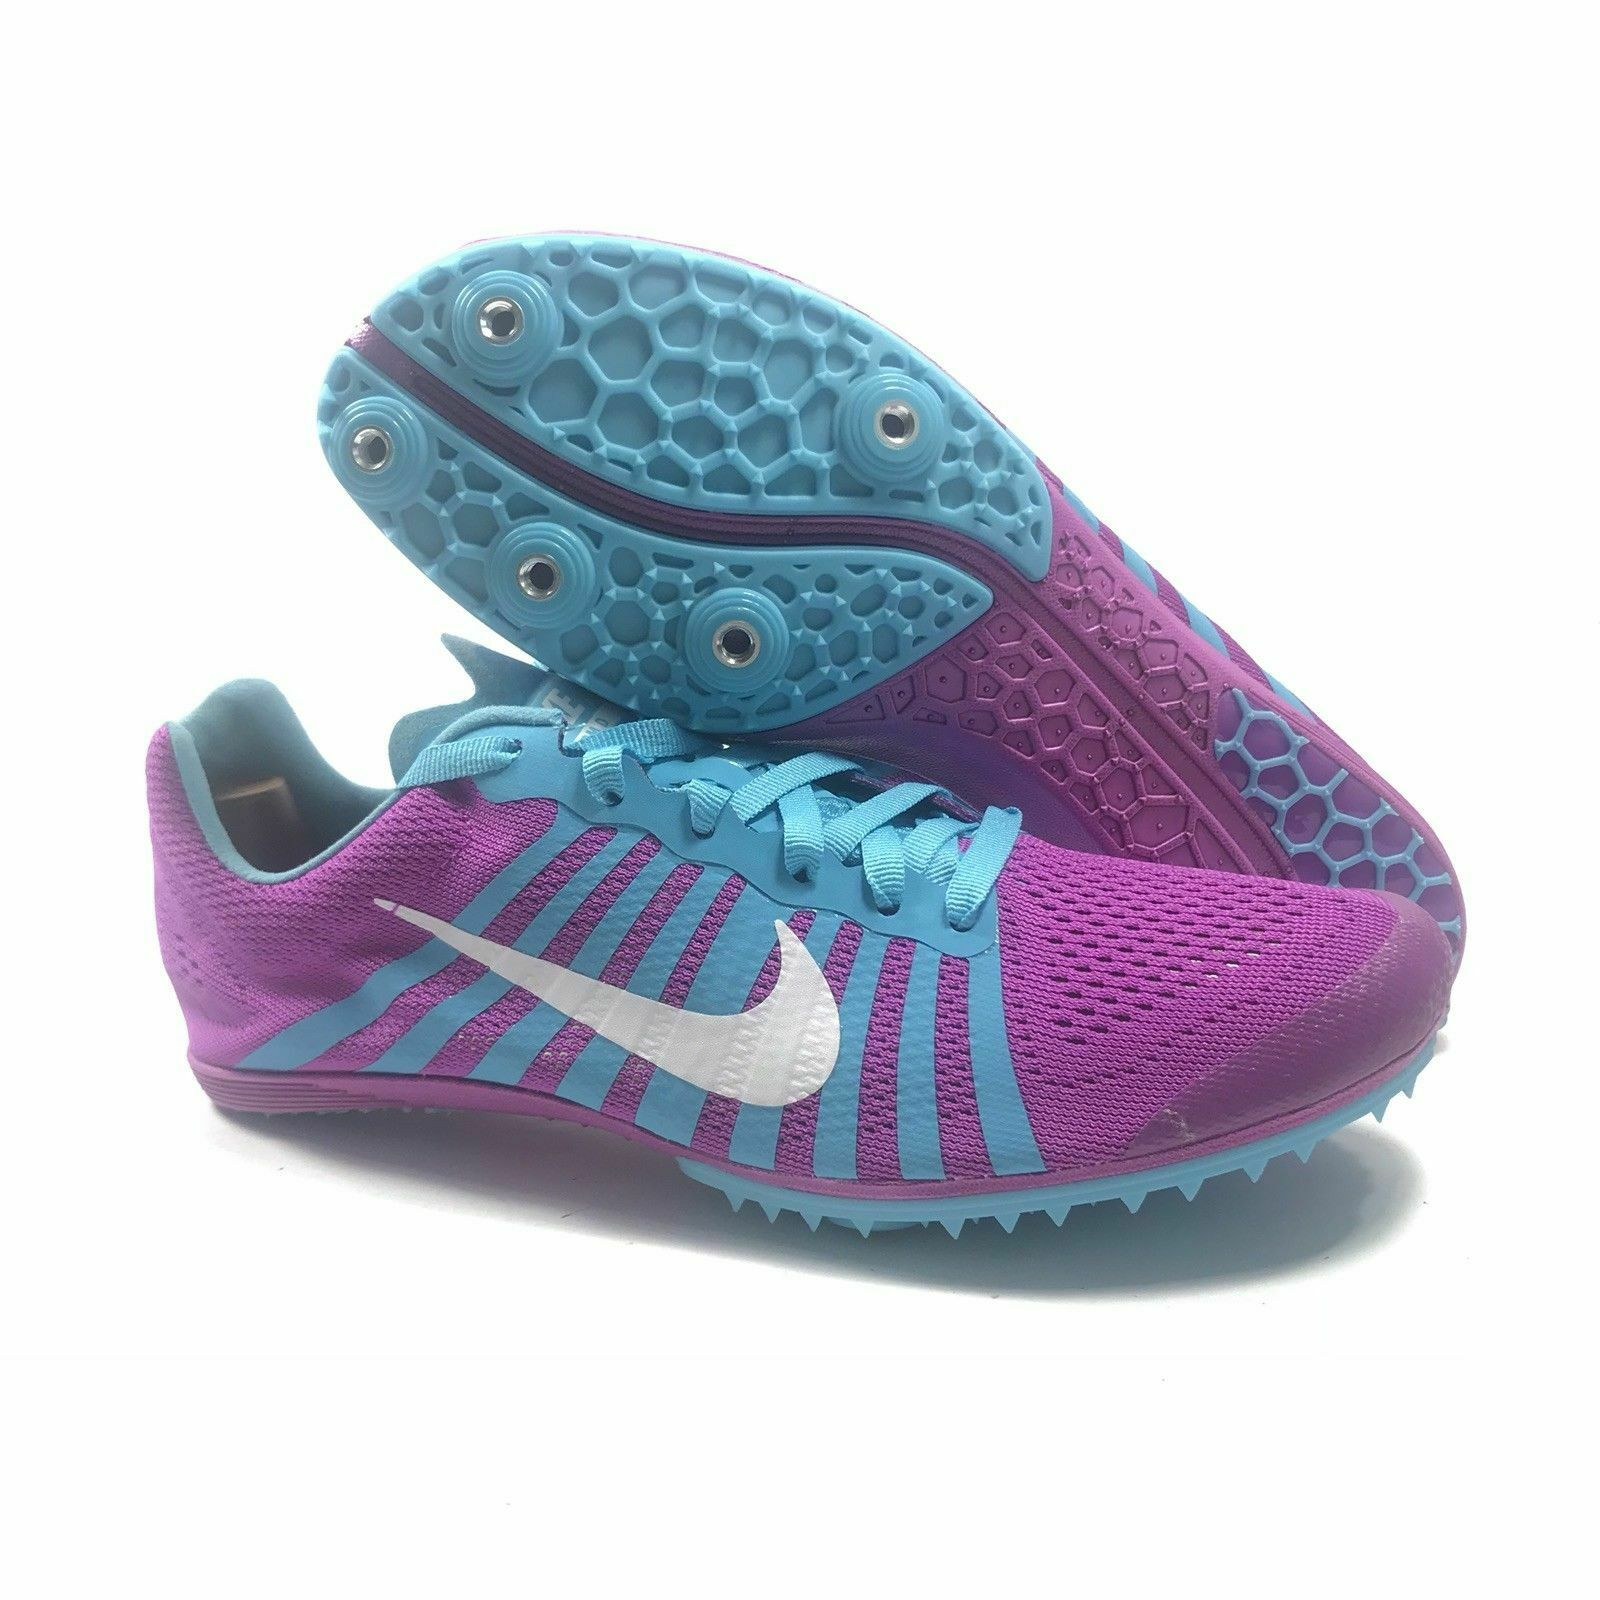 Nike Zoom D distance track track track spikes NEW 819164-514 size US 6.5 send worldwide a18e23